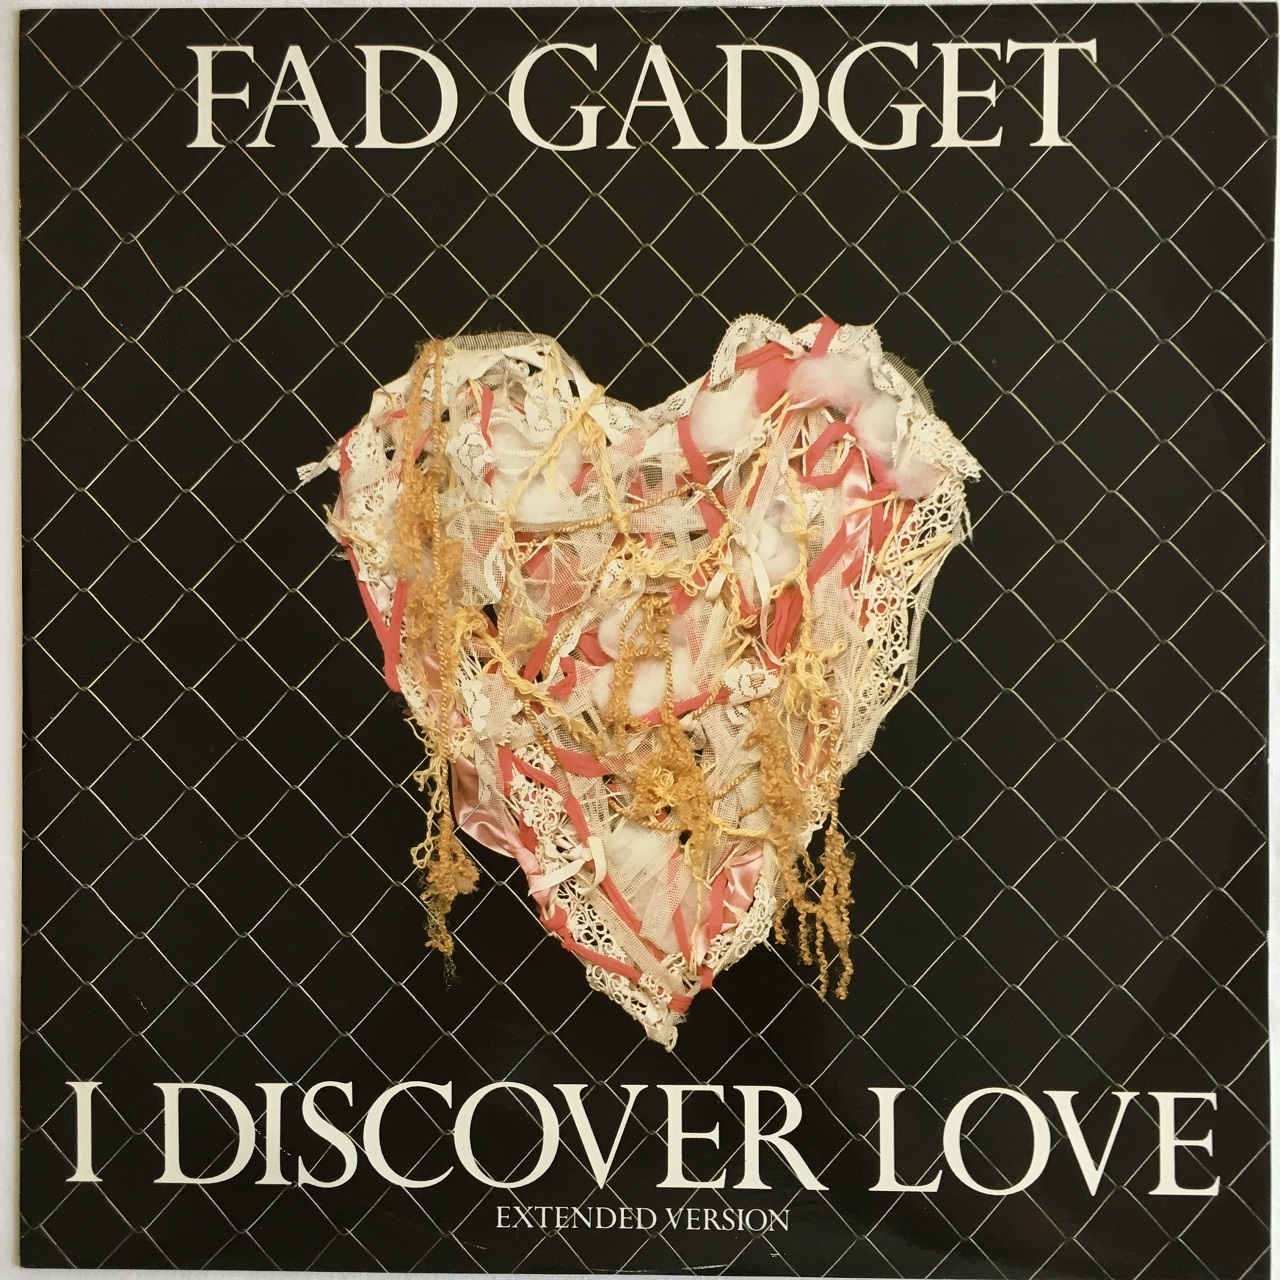 【12inch・英盤】Fad Gadget / I Discover Love (Extended Version)